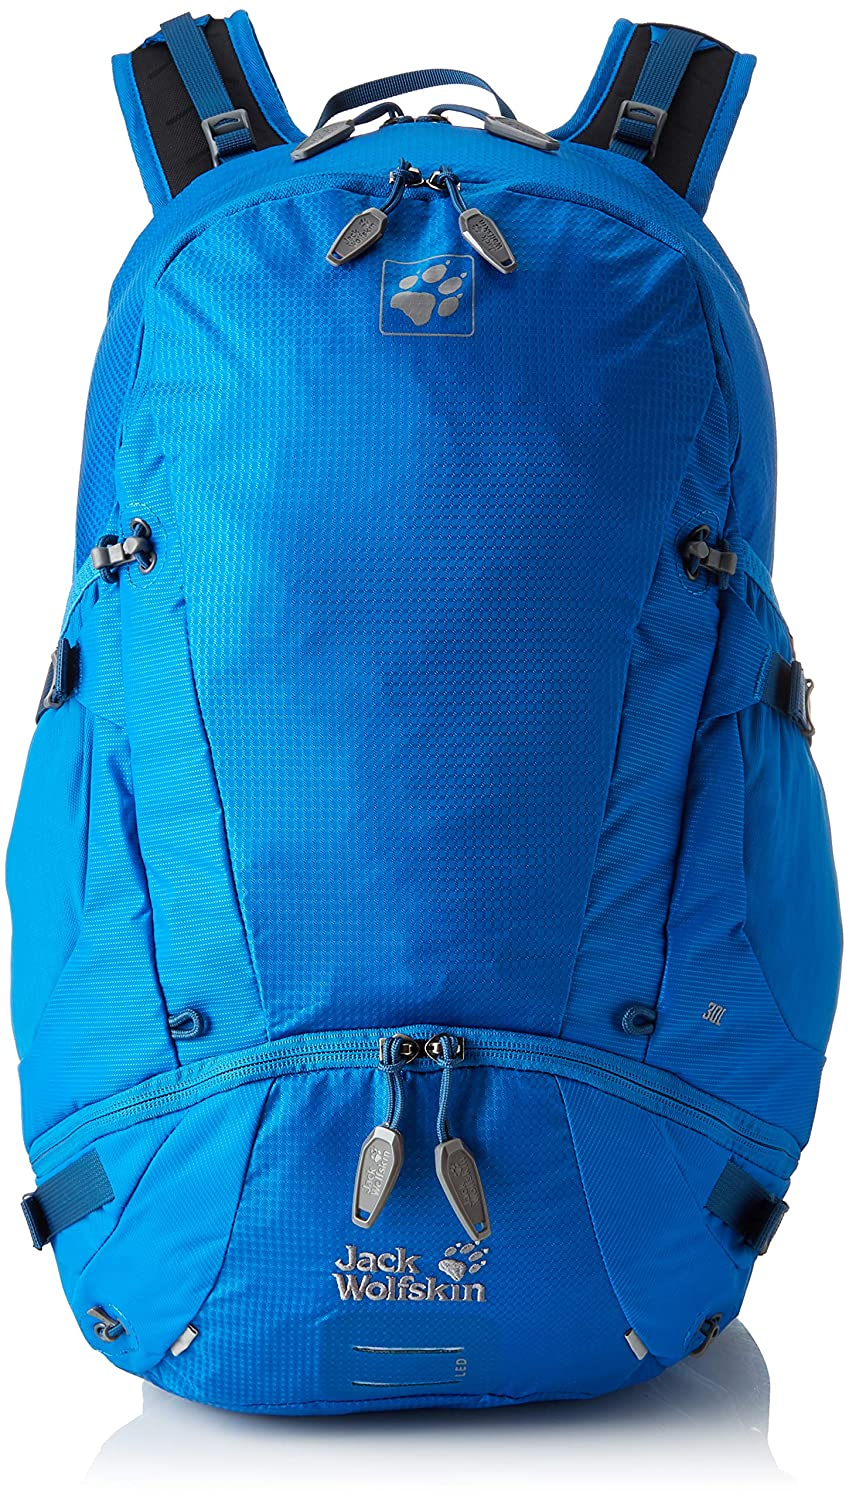 Jack Wolfskin Moab Jam Hiking Hydration Backpack